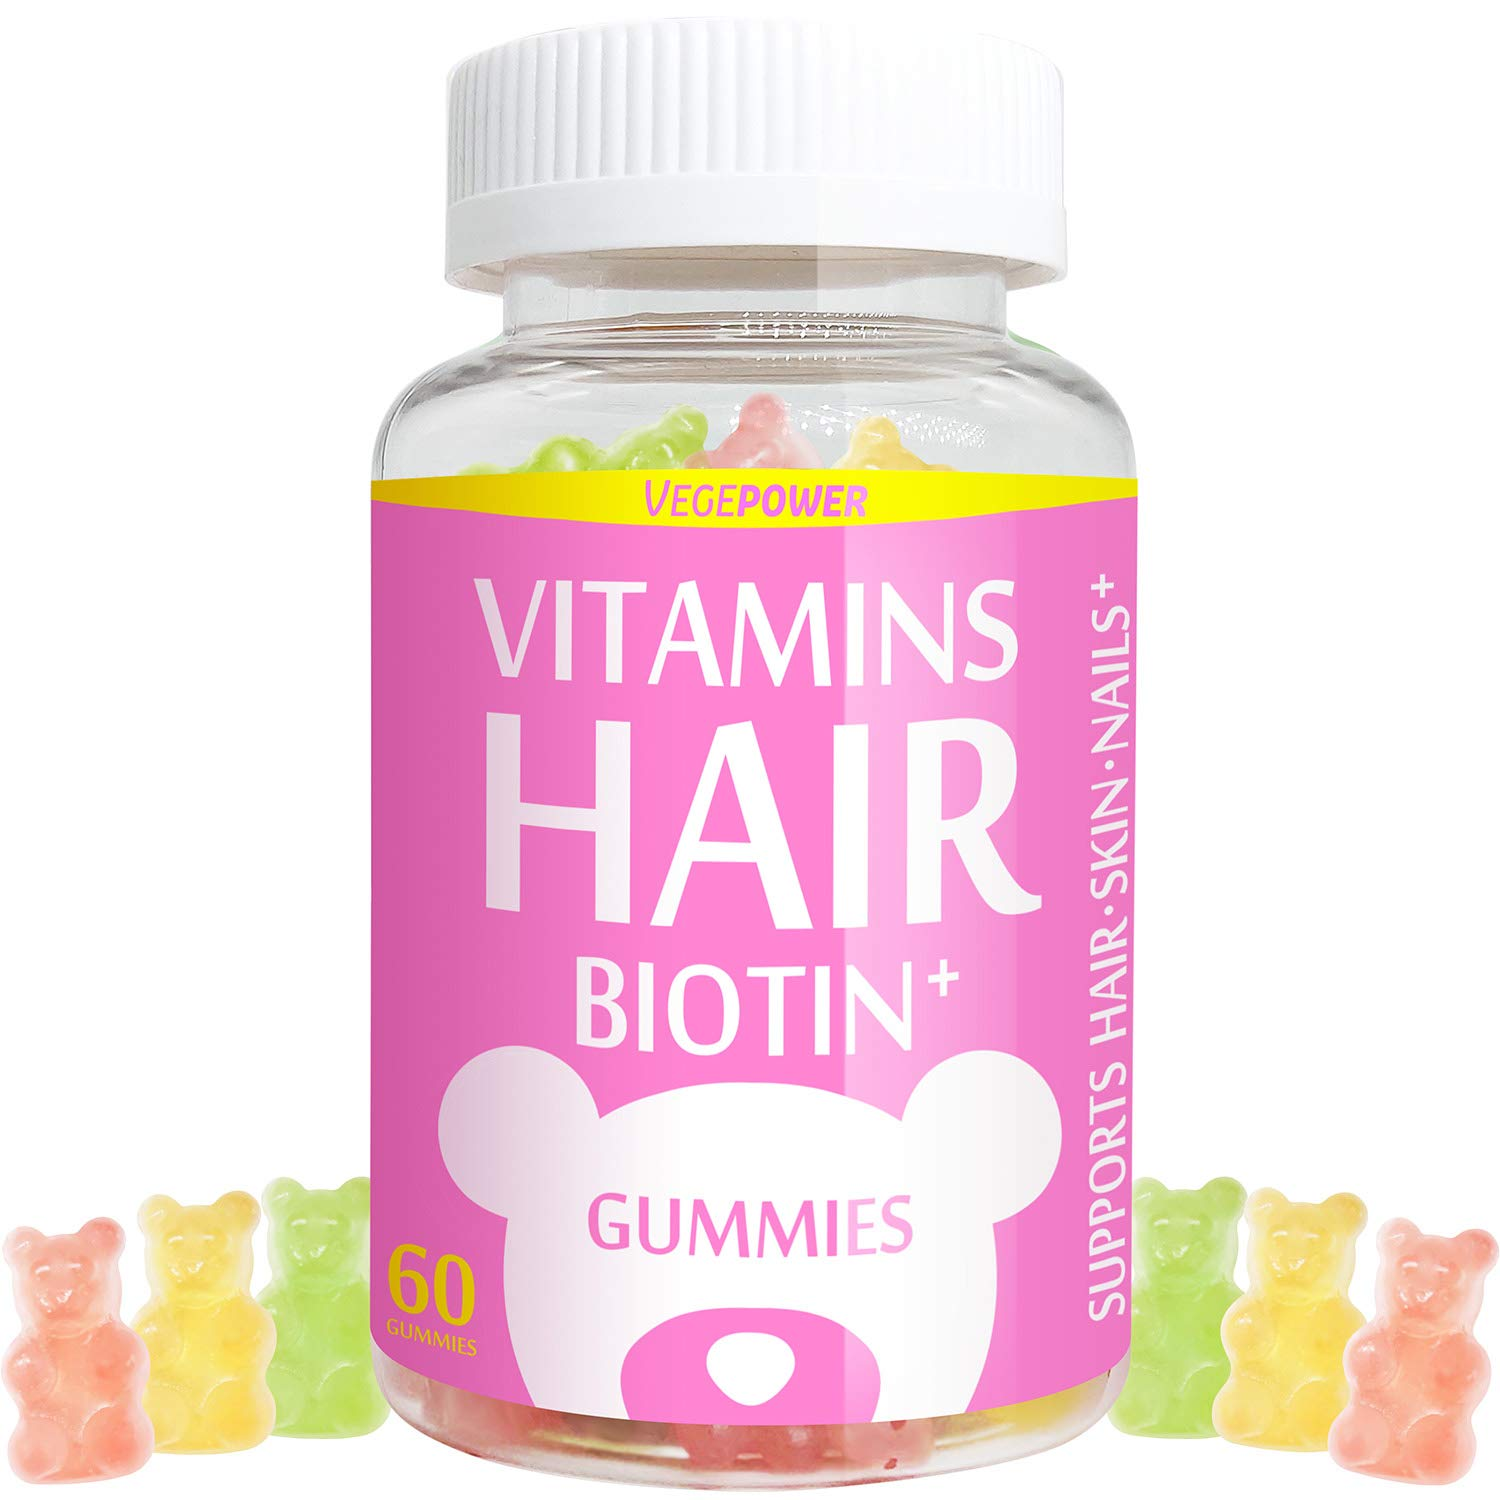 VegePower - VegePower Hair Skin and Nails Vitamin Gummies-Biotin 10,000mcg [Highest Potency] for Hair Growth-Vegan Hair Bear Gummy for Women & Men,Non-GMO,Gluten-Free,Hair Thicken Supplement